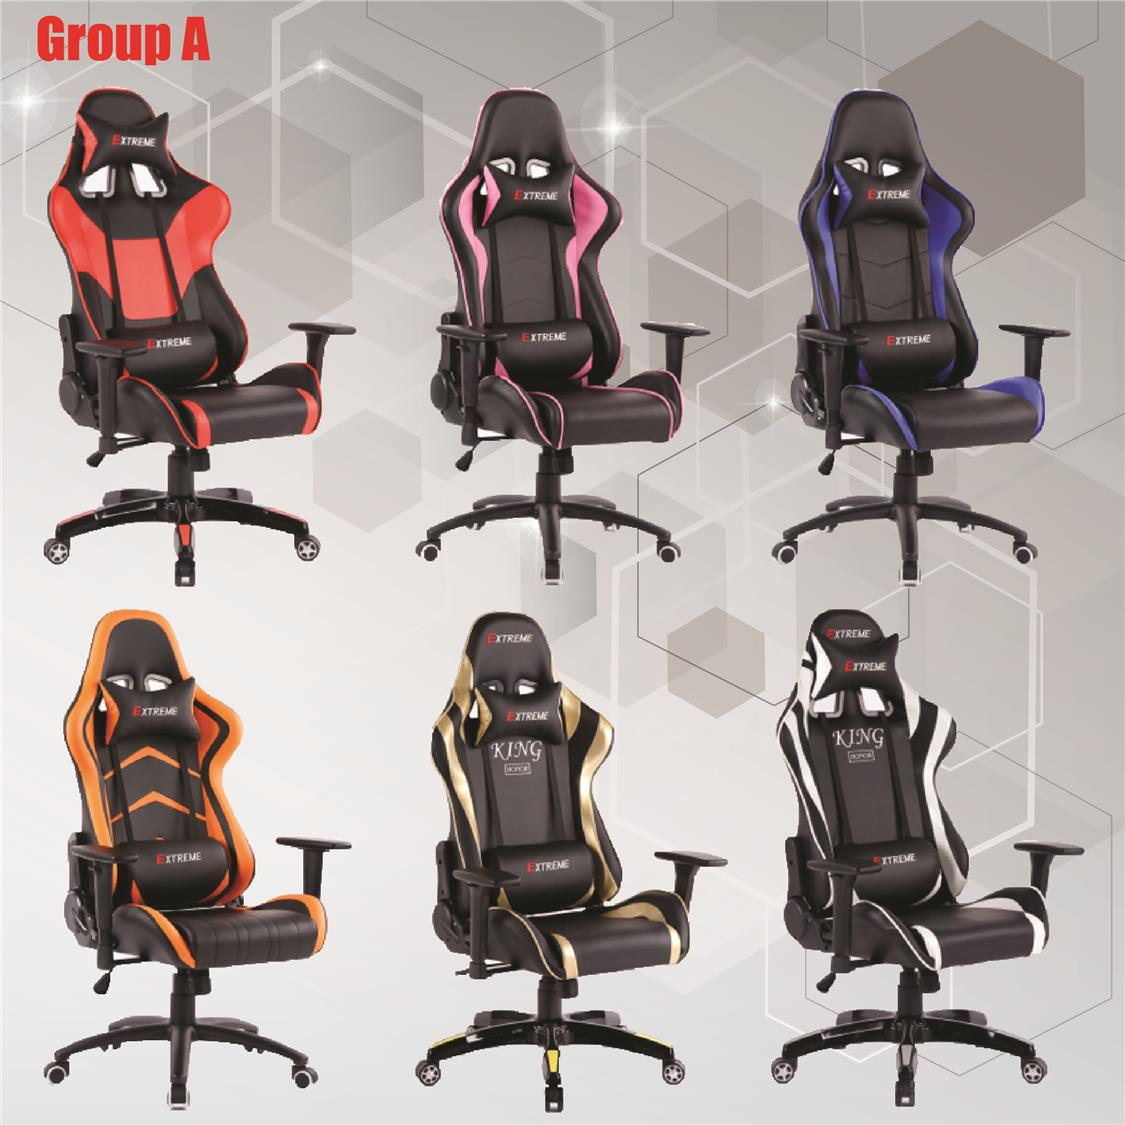 Extreme Gaming Chair End 12 6 2017 2 15 Am Myt